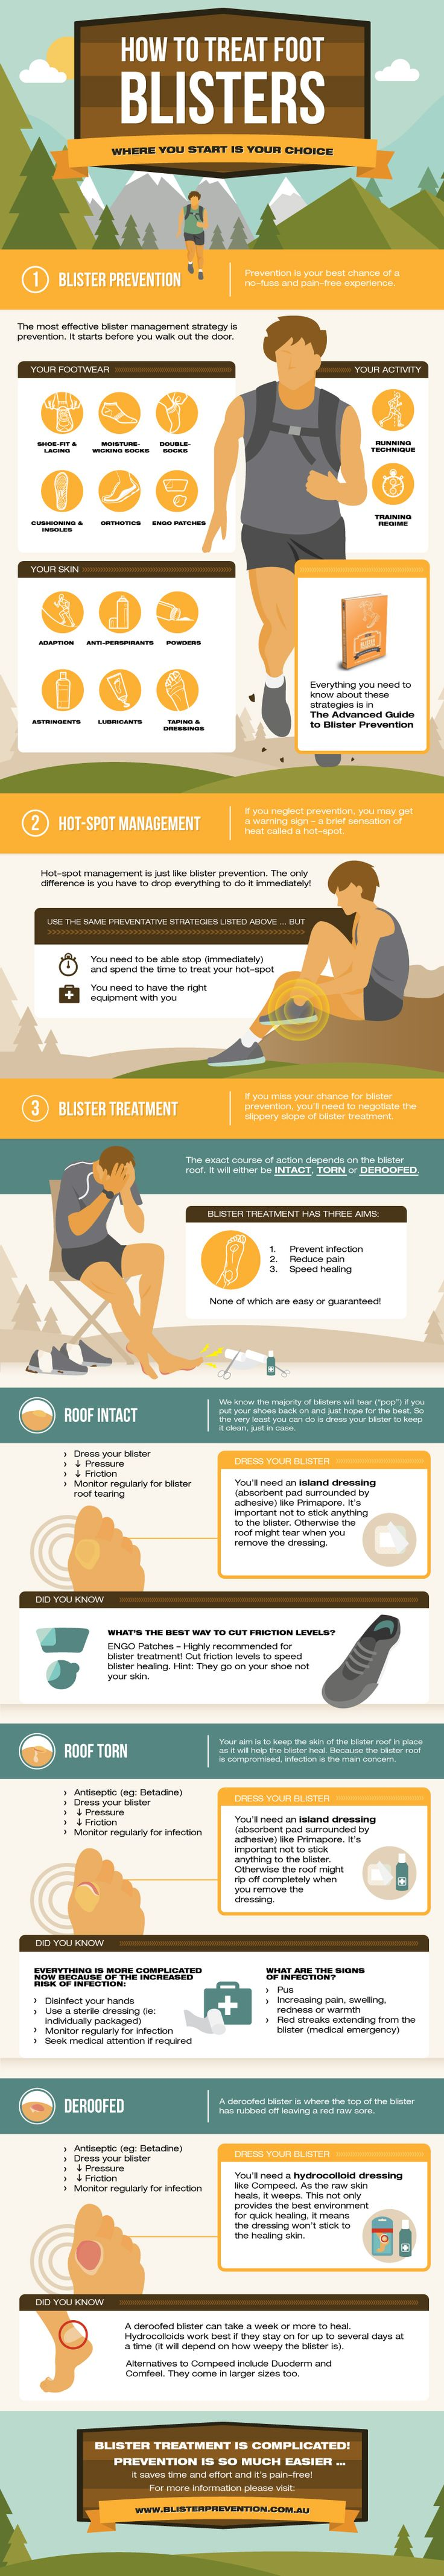 Blister care for ultrarunners